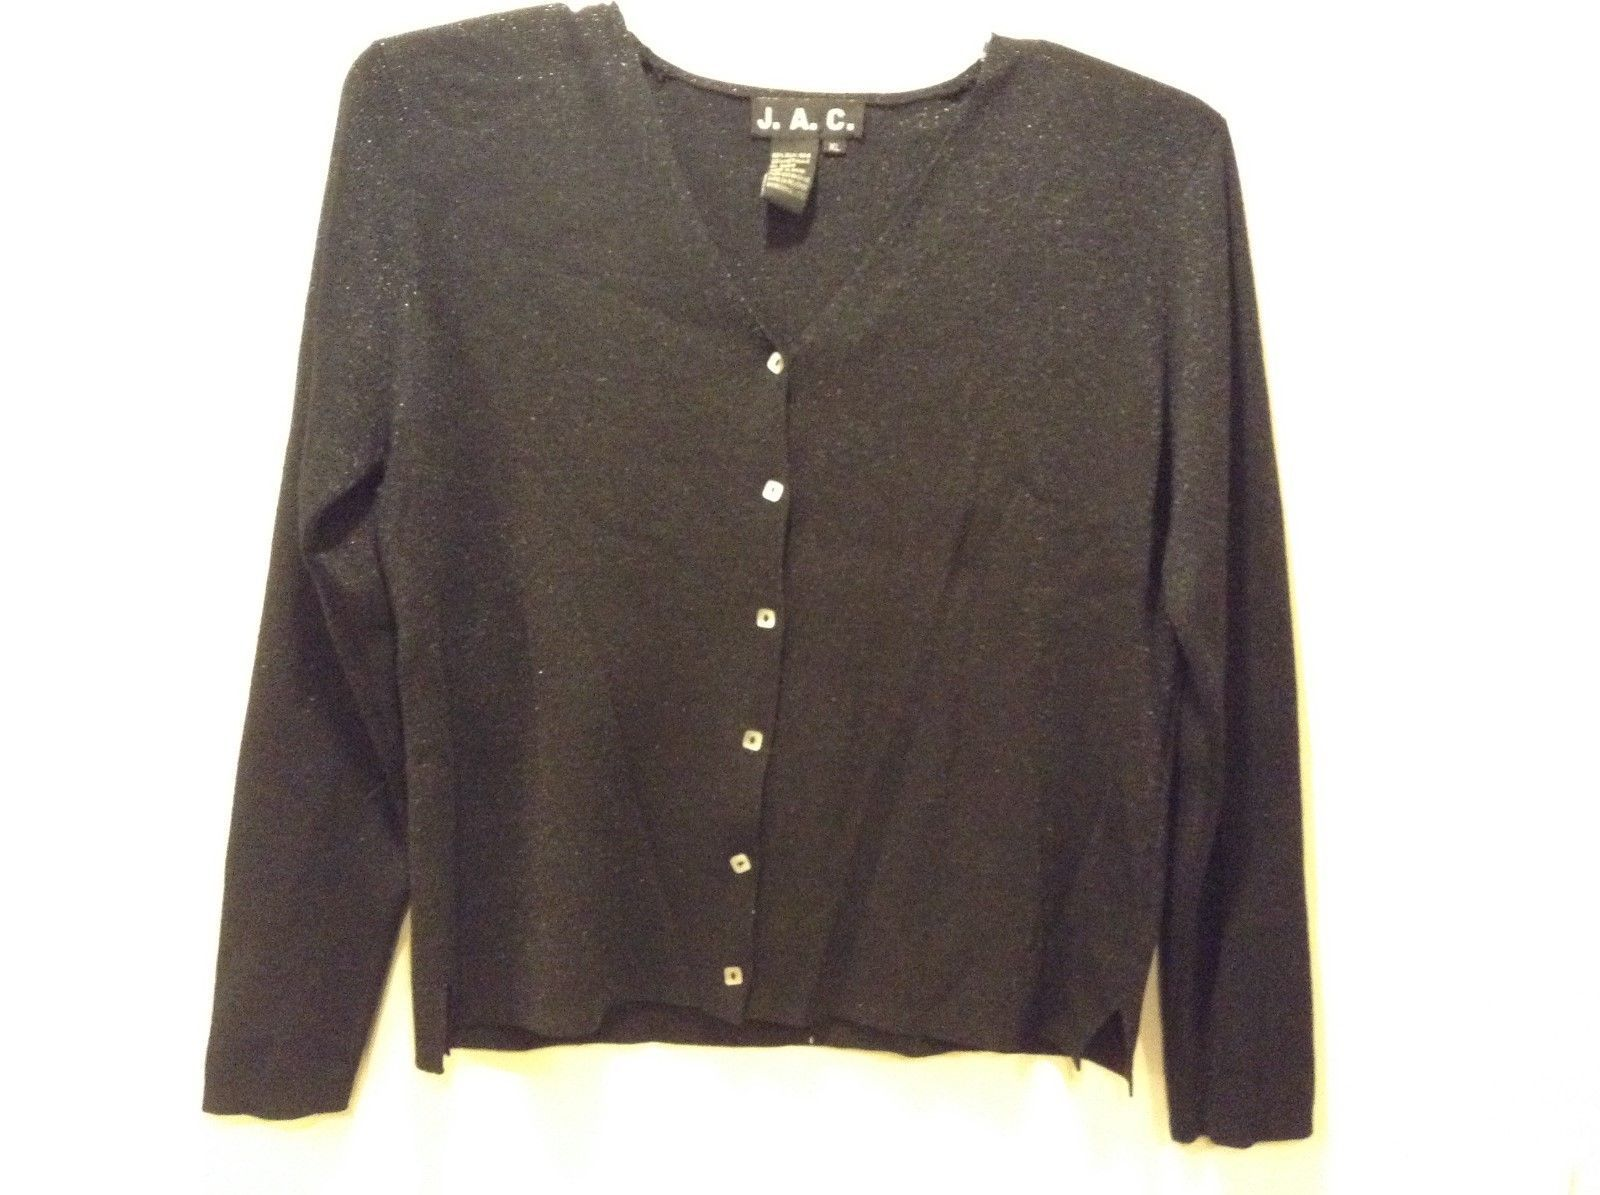 J.A.C Women's V-Neck Black Metallic Button Up Cardigan Sweater Sz XL